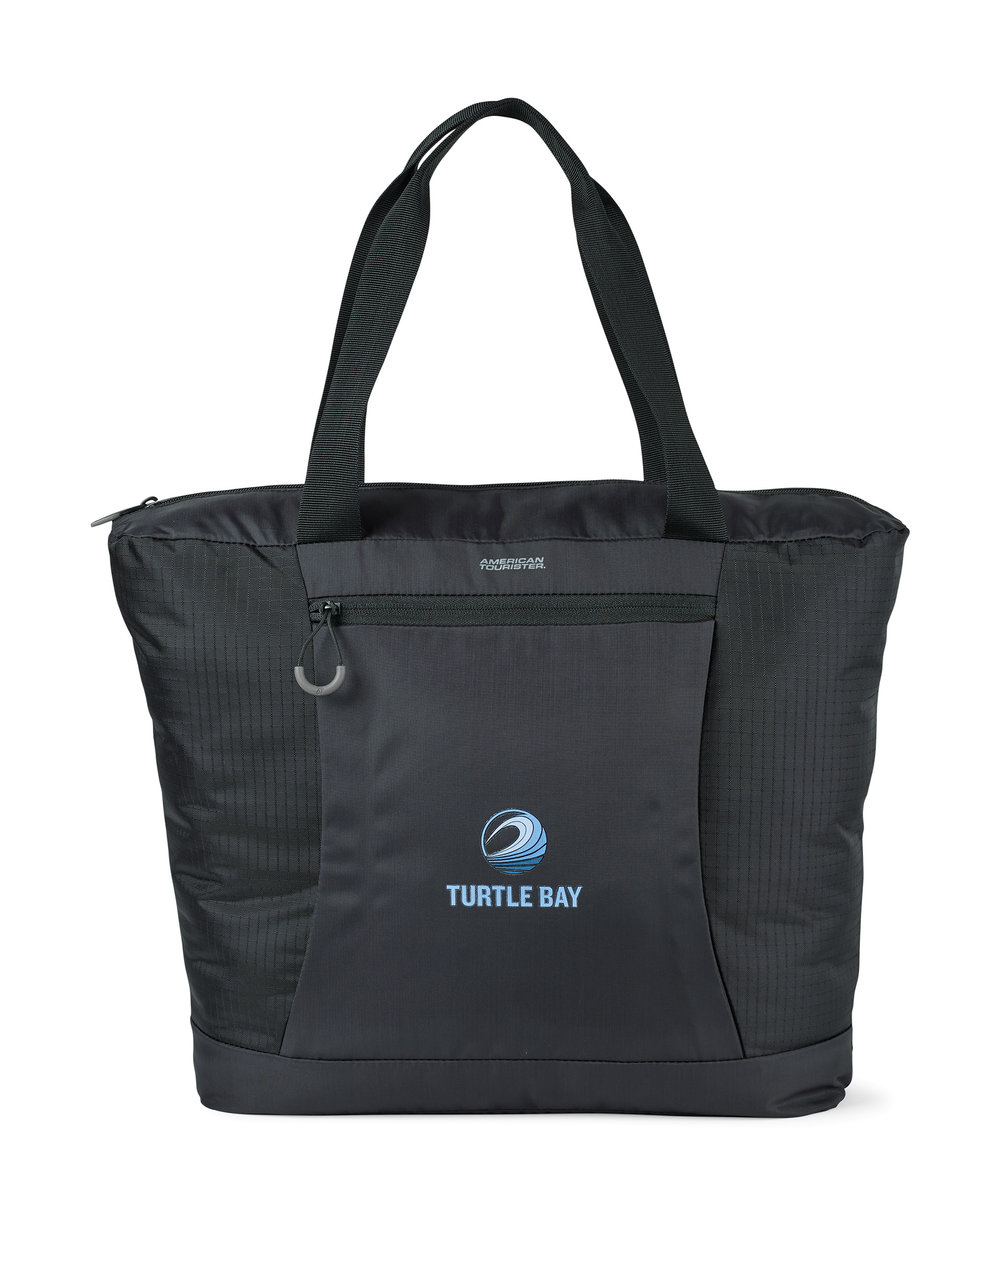 When the tote is packed into its pouch, the pouch has soft tricot lining that is designed to work as a travel pillow.